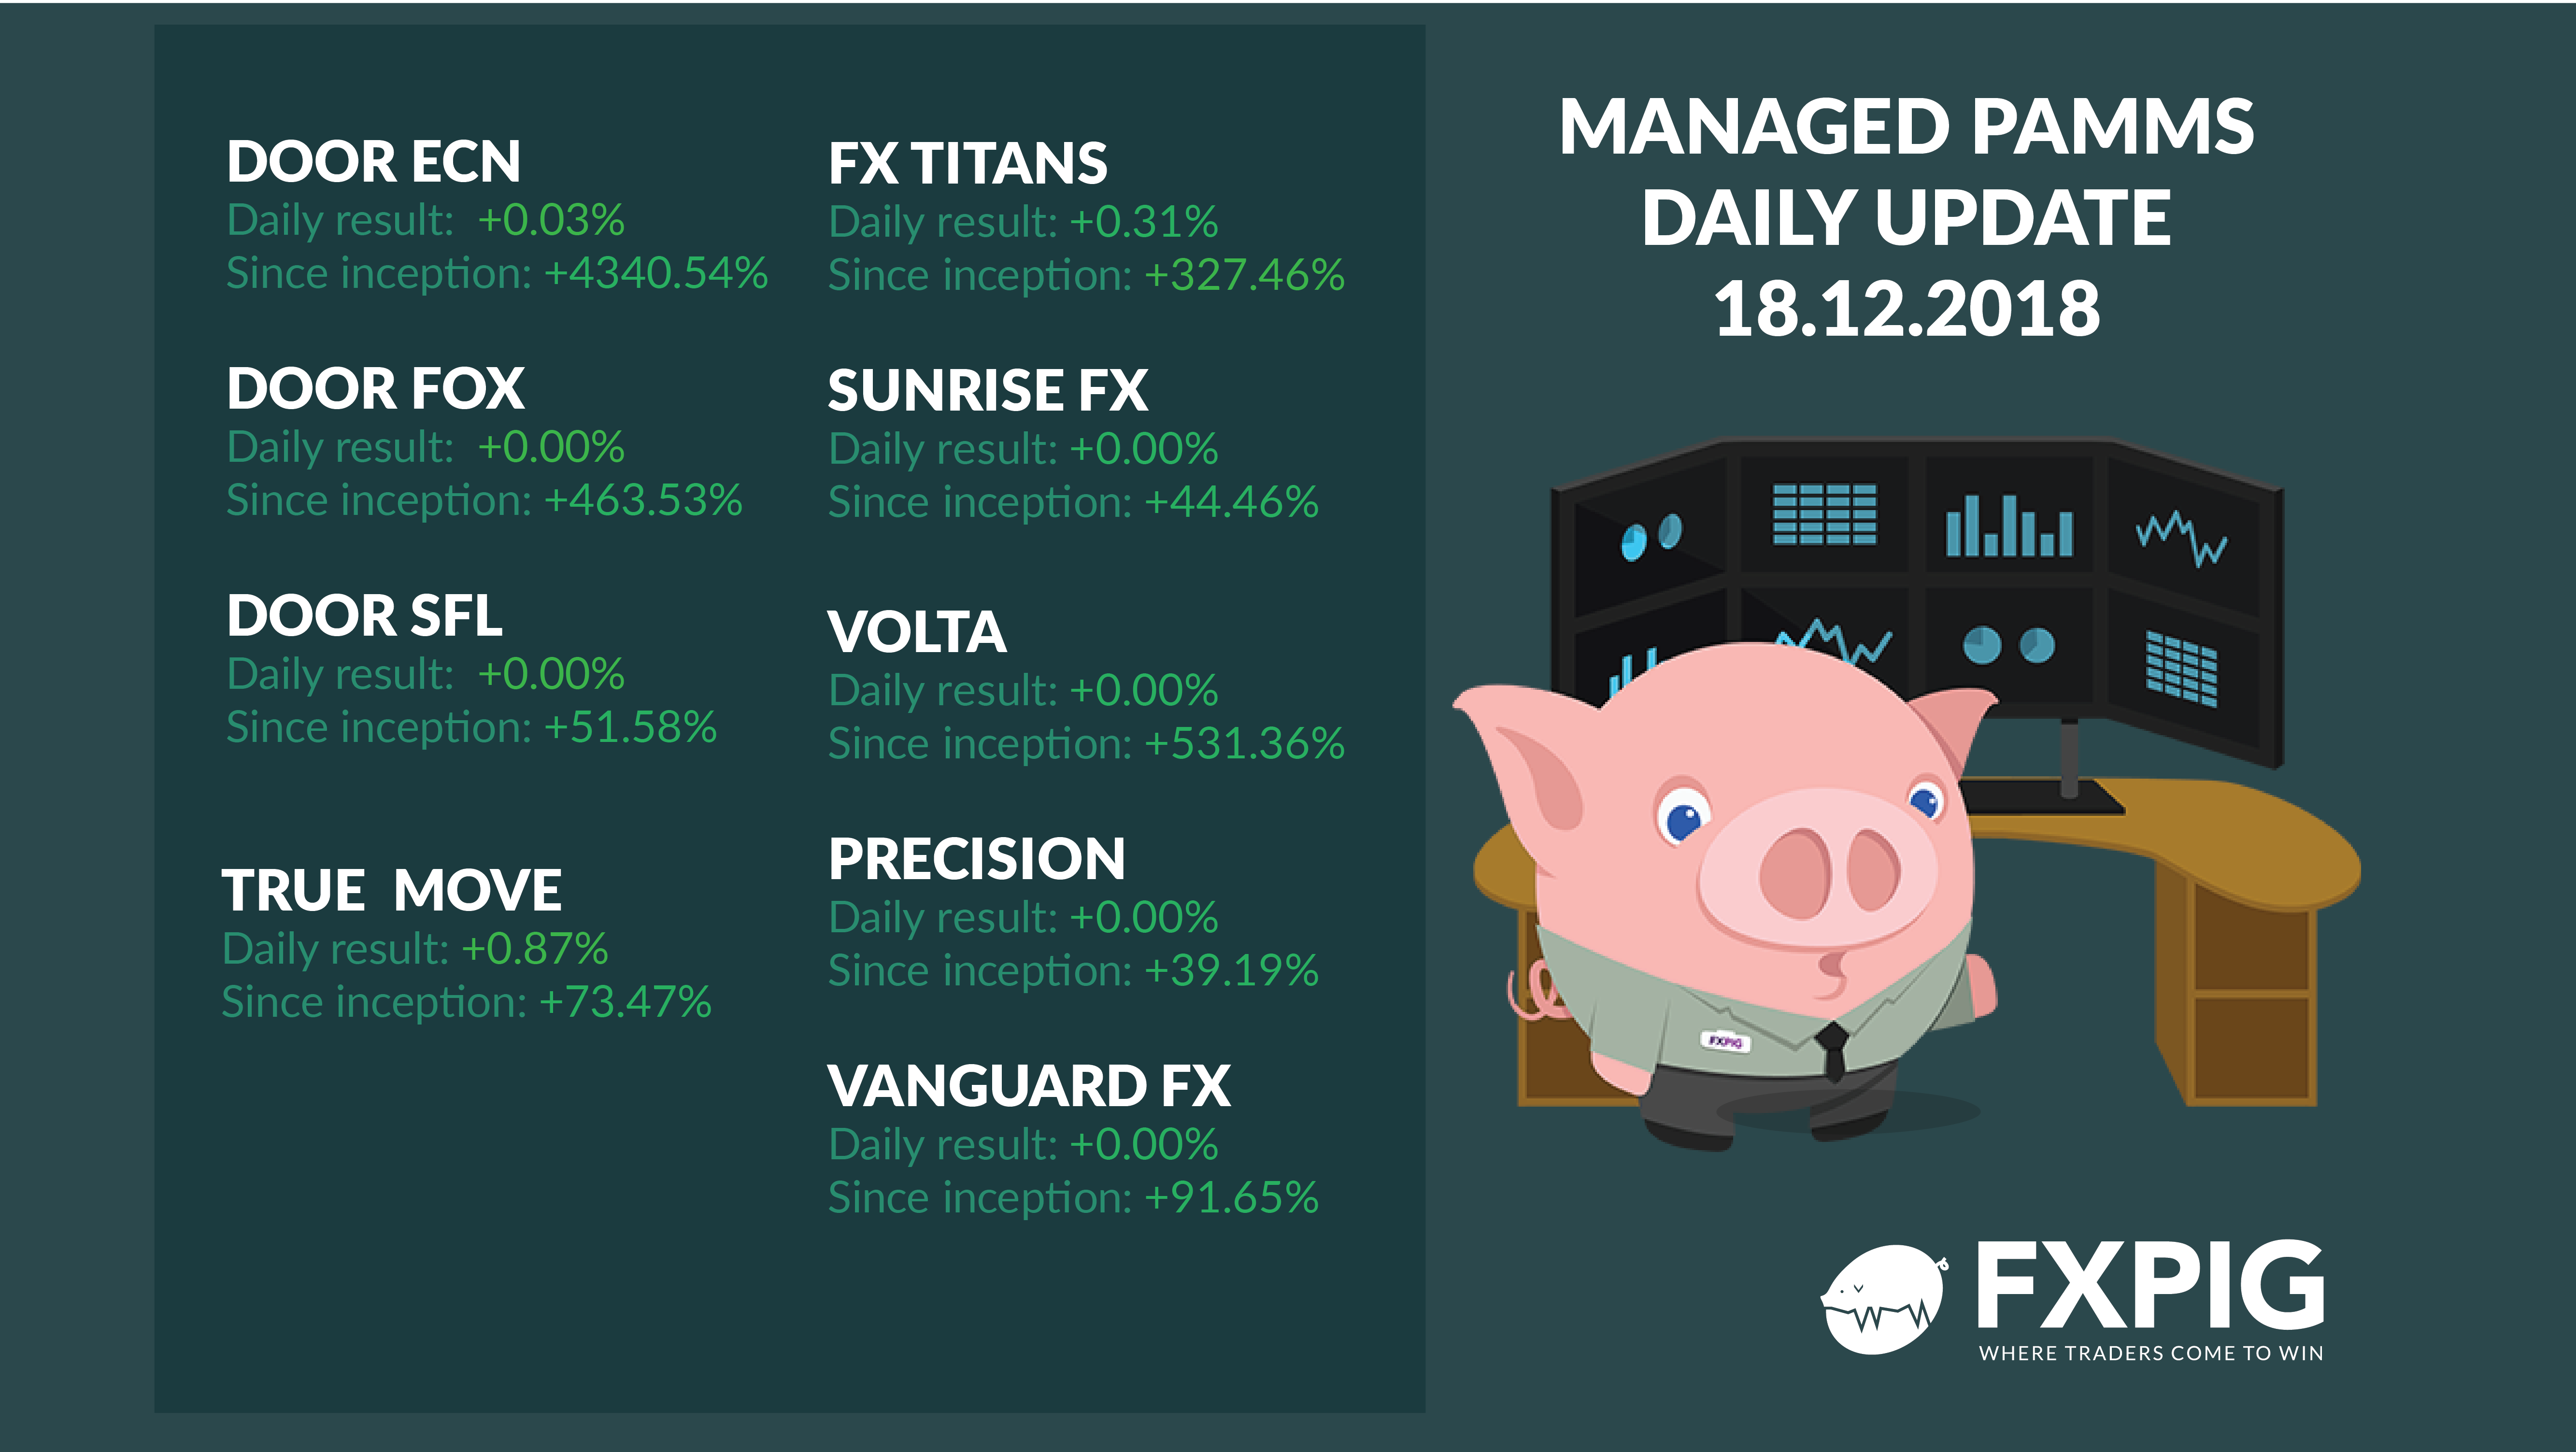 Forex_Trading_Fx_Trader_FXPIG_PAMMS_MANAGED_ACCOUNTS_PROFIT_18.12.2018